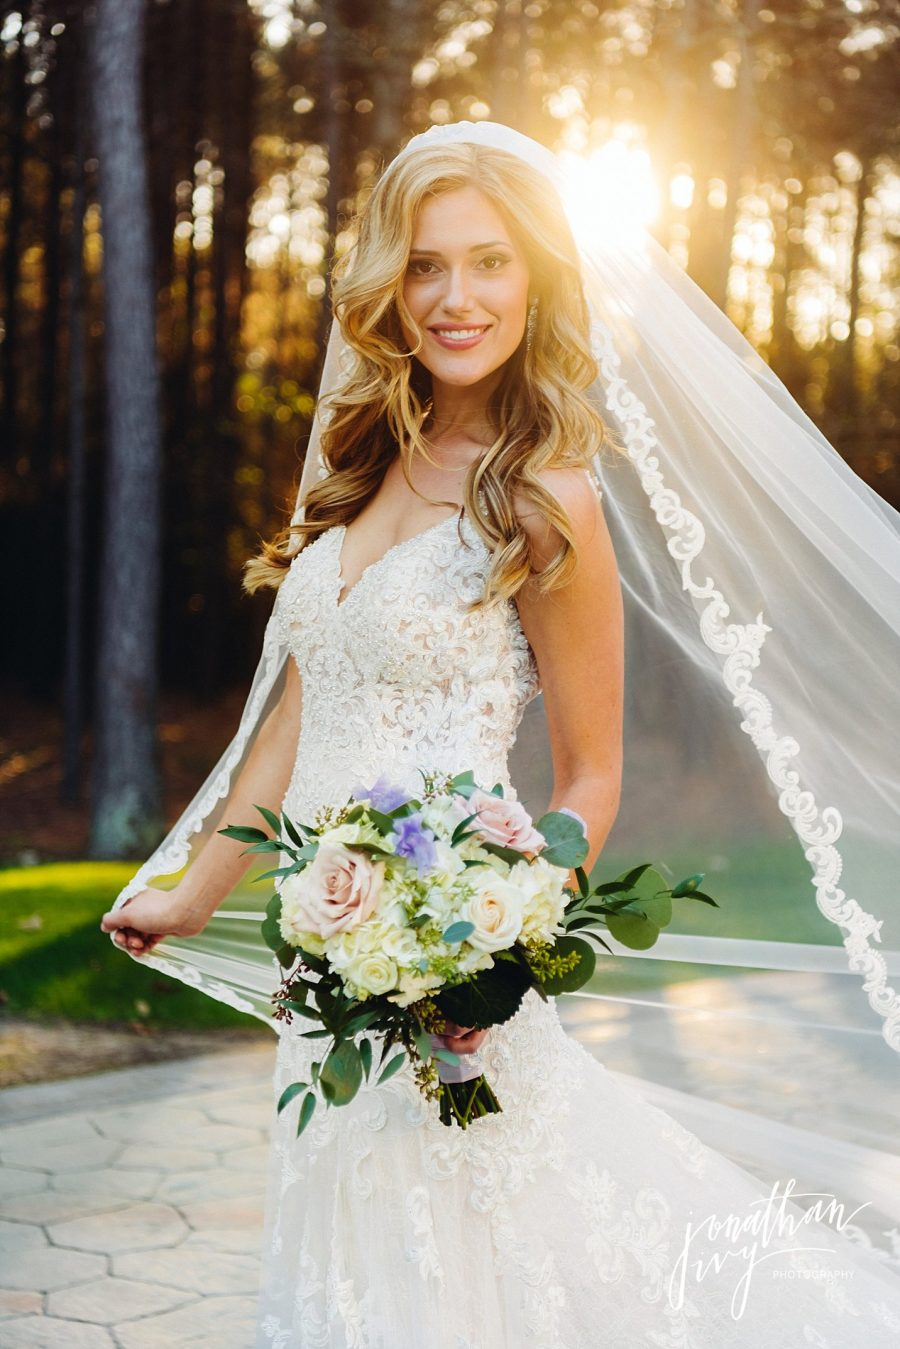 Woodlands Bridal at Chapel in the Woods